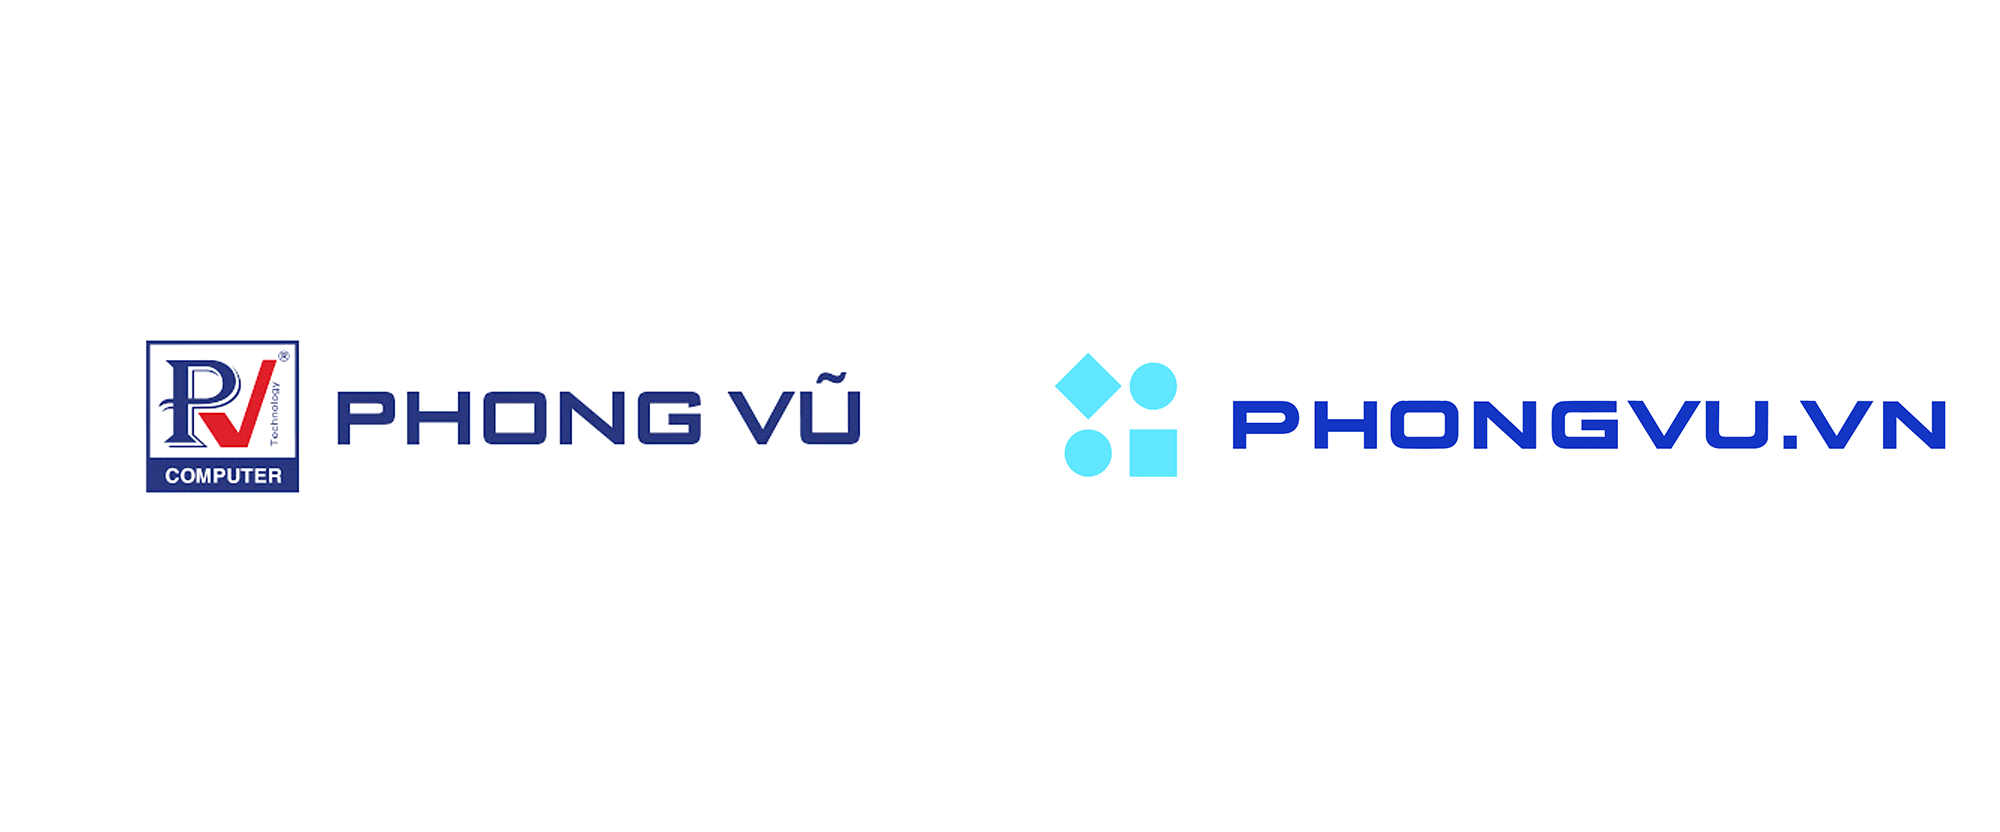 New Logo for Phong Vu